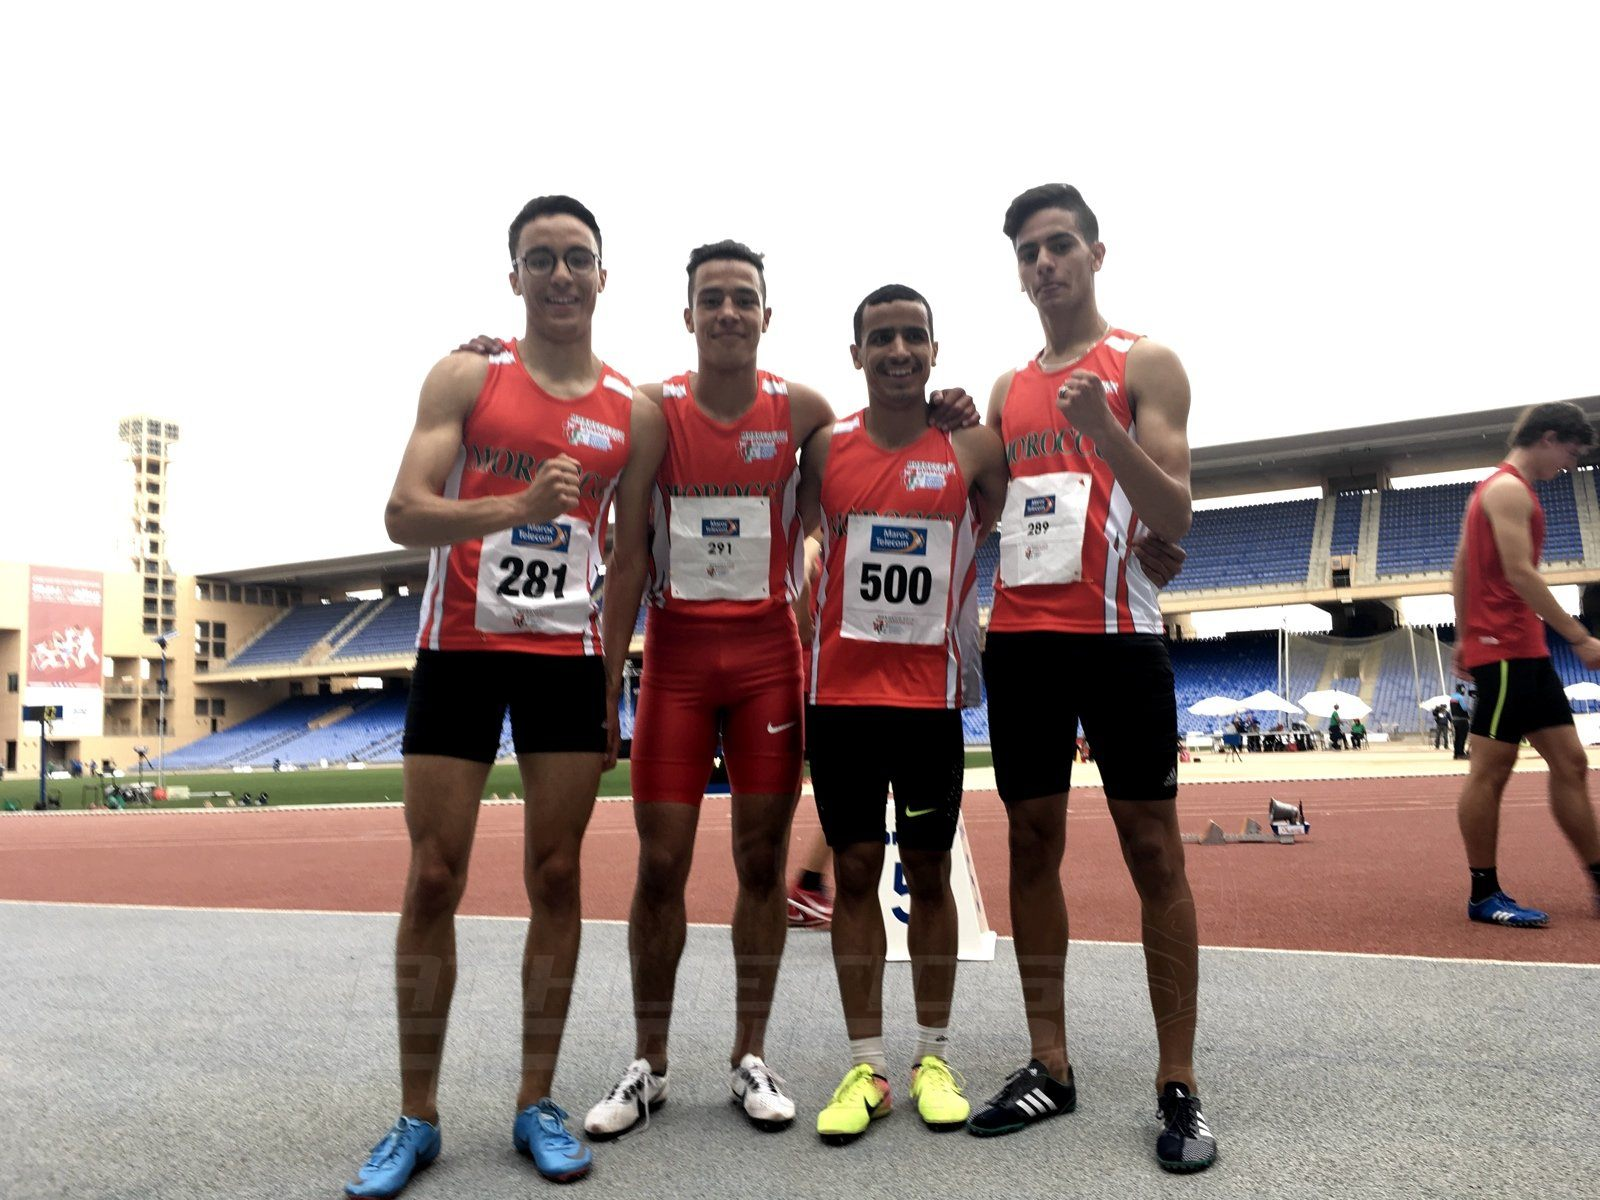 Morocco's Boys 200mx400mx600mx800m relay team after winning gold at Gymnasiade 2018 / Photo Credit: Yomi Omogbeja